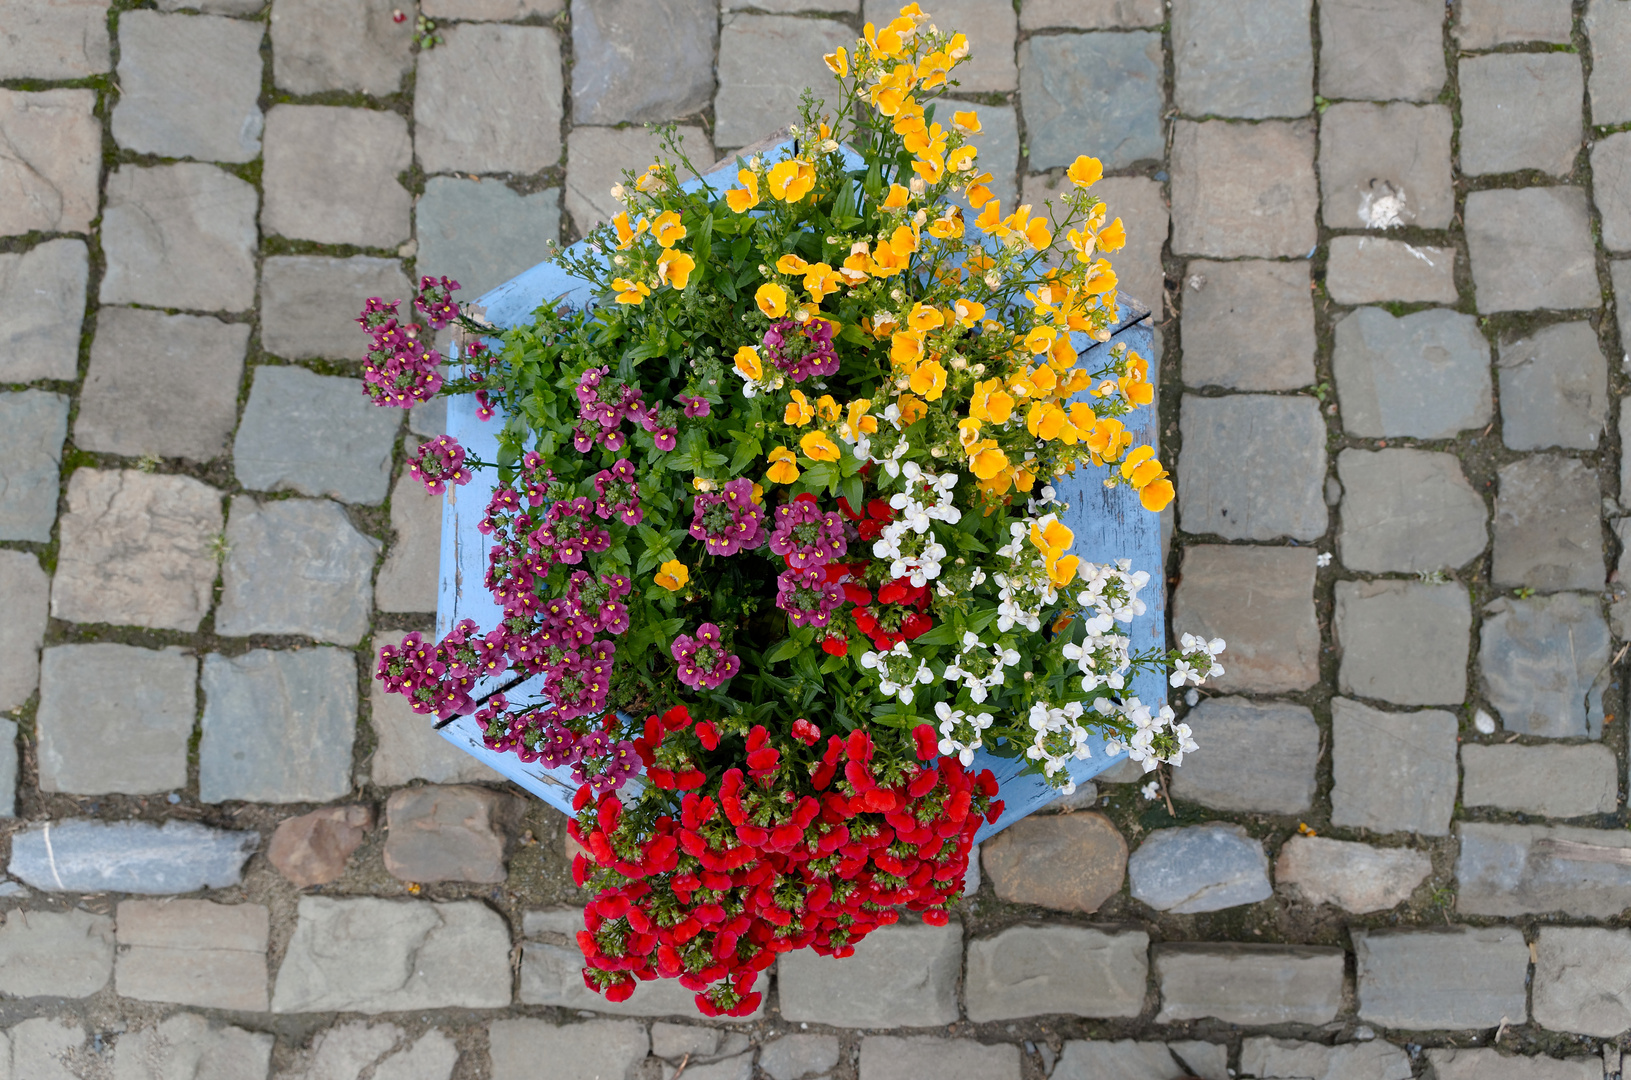 Limbourg: was Buntes